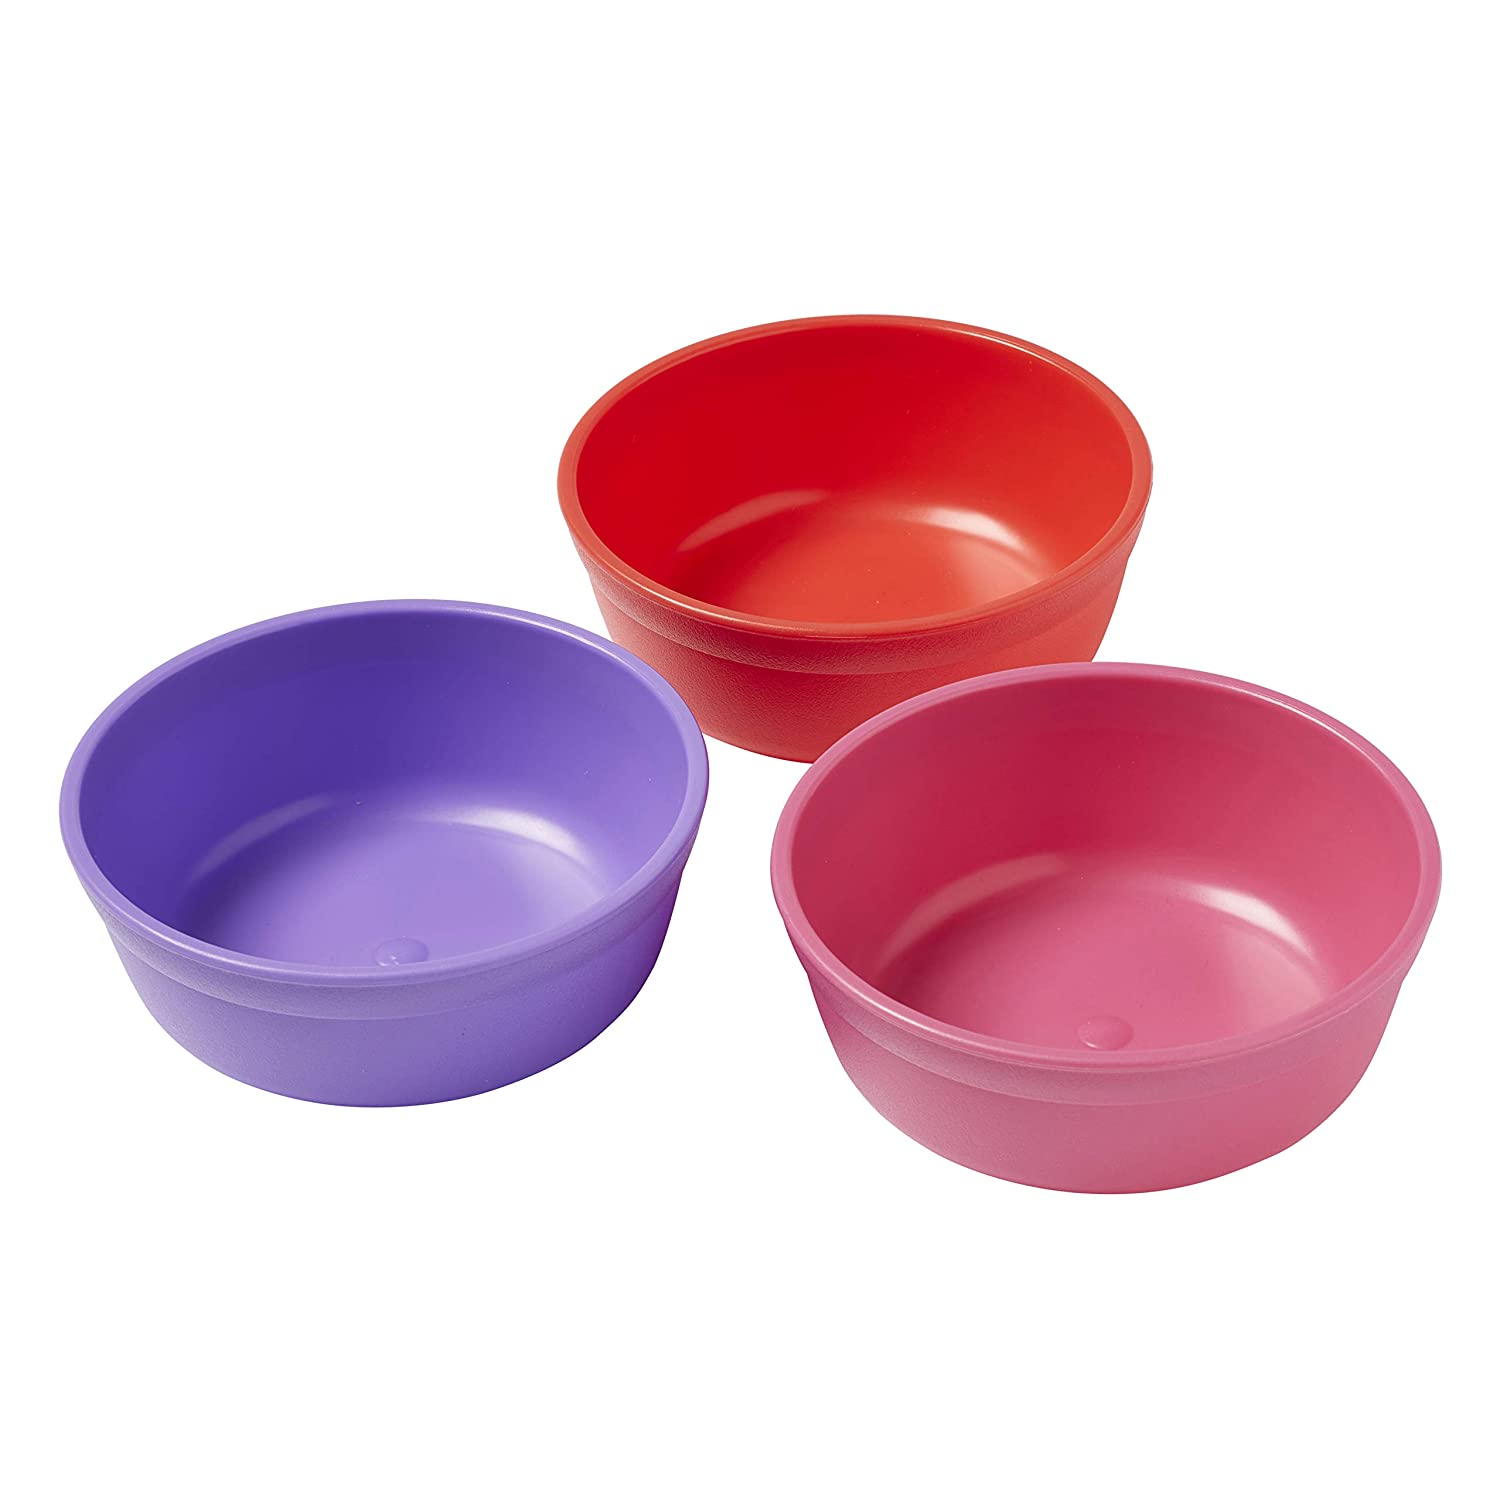 ECR4Kids My First Meal Pal Snack Plastic Kids Bowls – BPA-Free, Dishwasher Safe, Stackable Bowls for Baby, Toddler and Child Feeding - 3-Pack, Berry